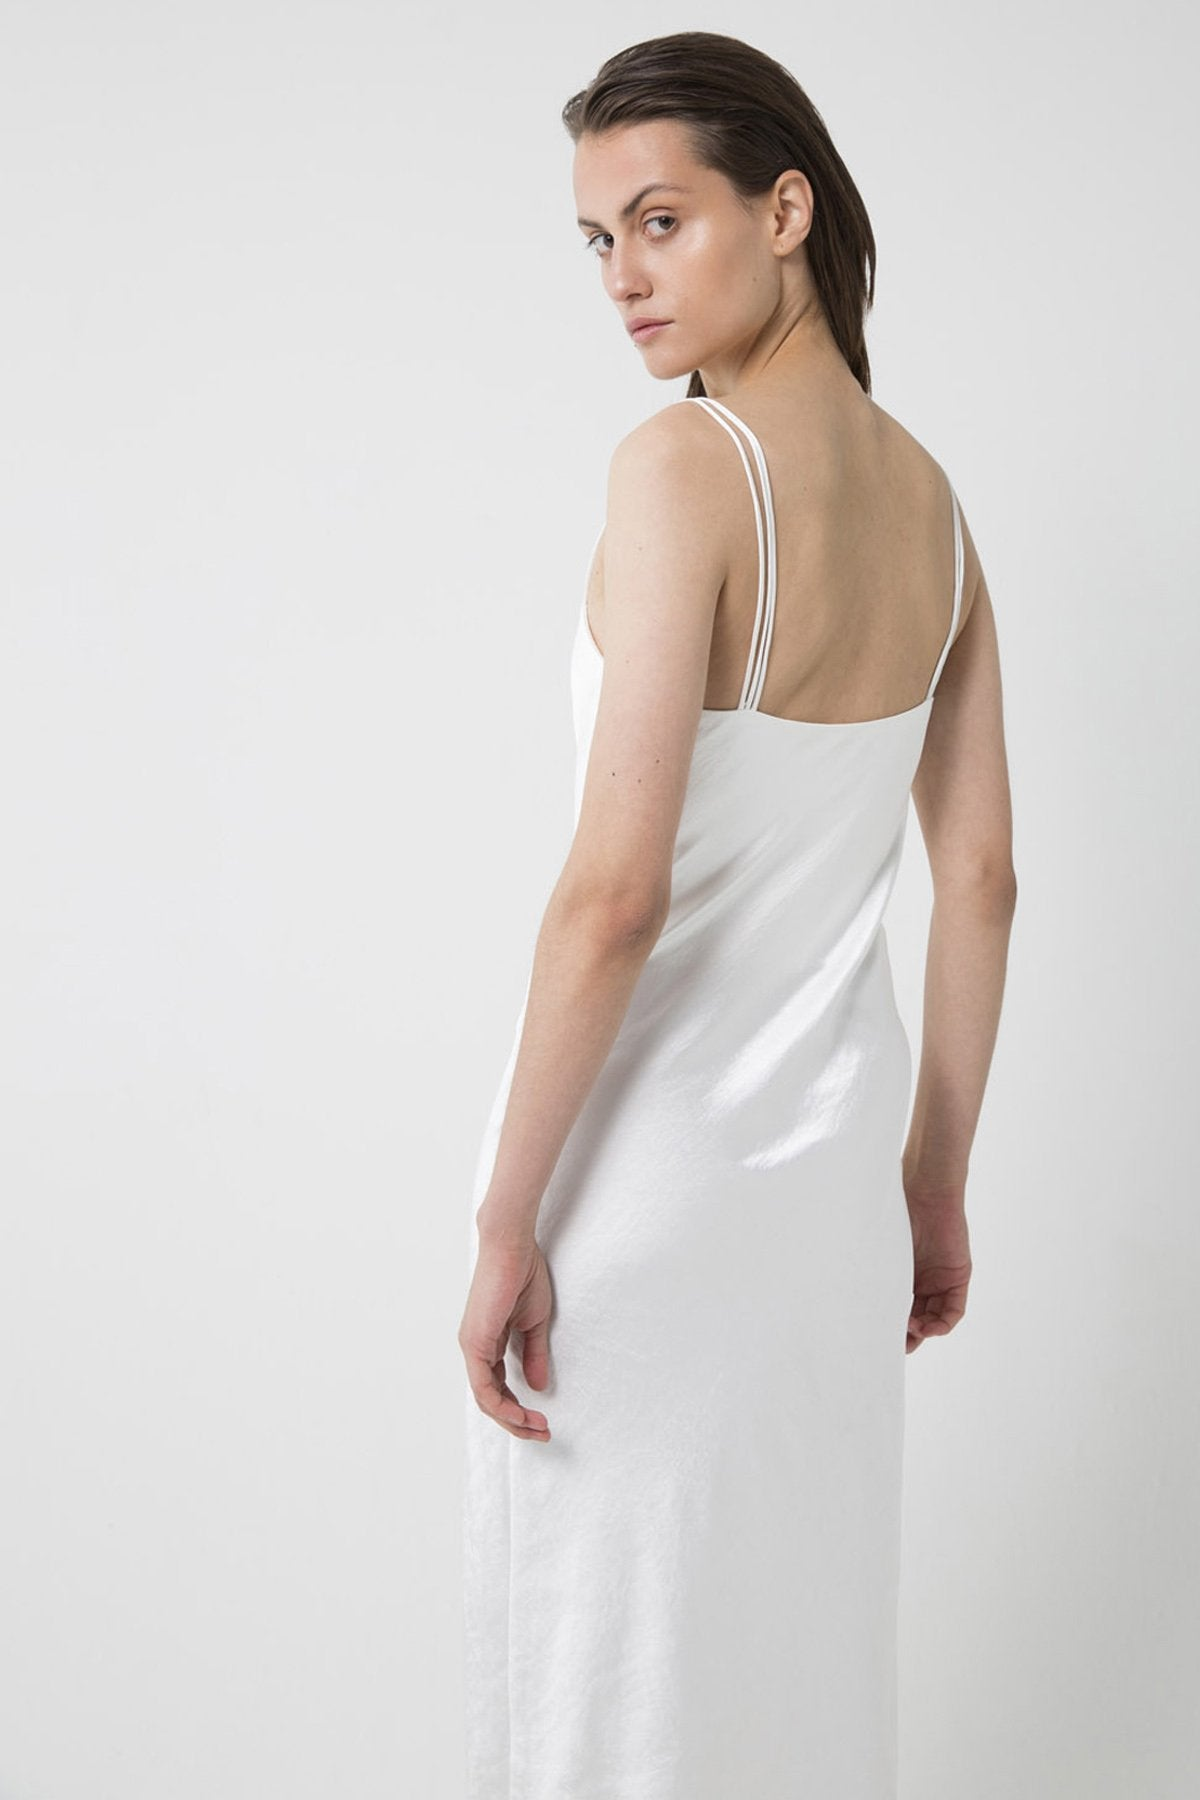 UNIKONCEPT lifestyle boutique: Bridal wear: Model is wearing white, satin, midi third form slip dress. The 90's bias midi slip dress comes with 3 strap detail and square neckline.